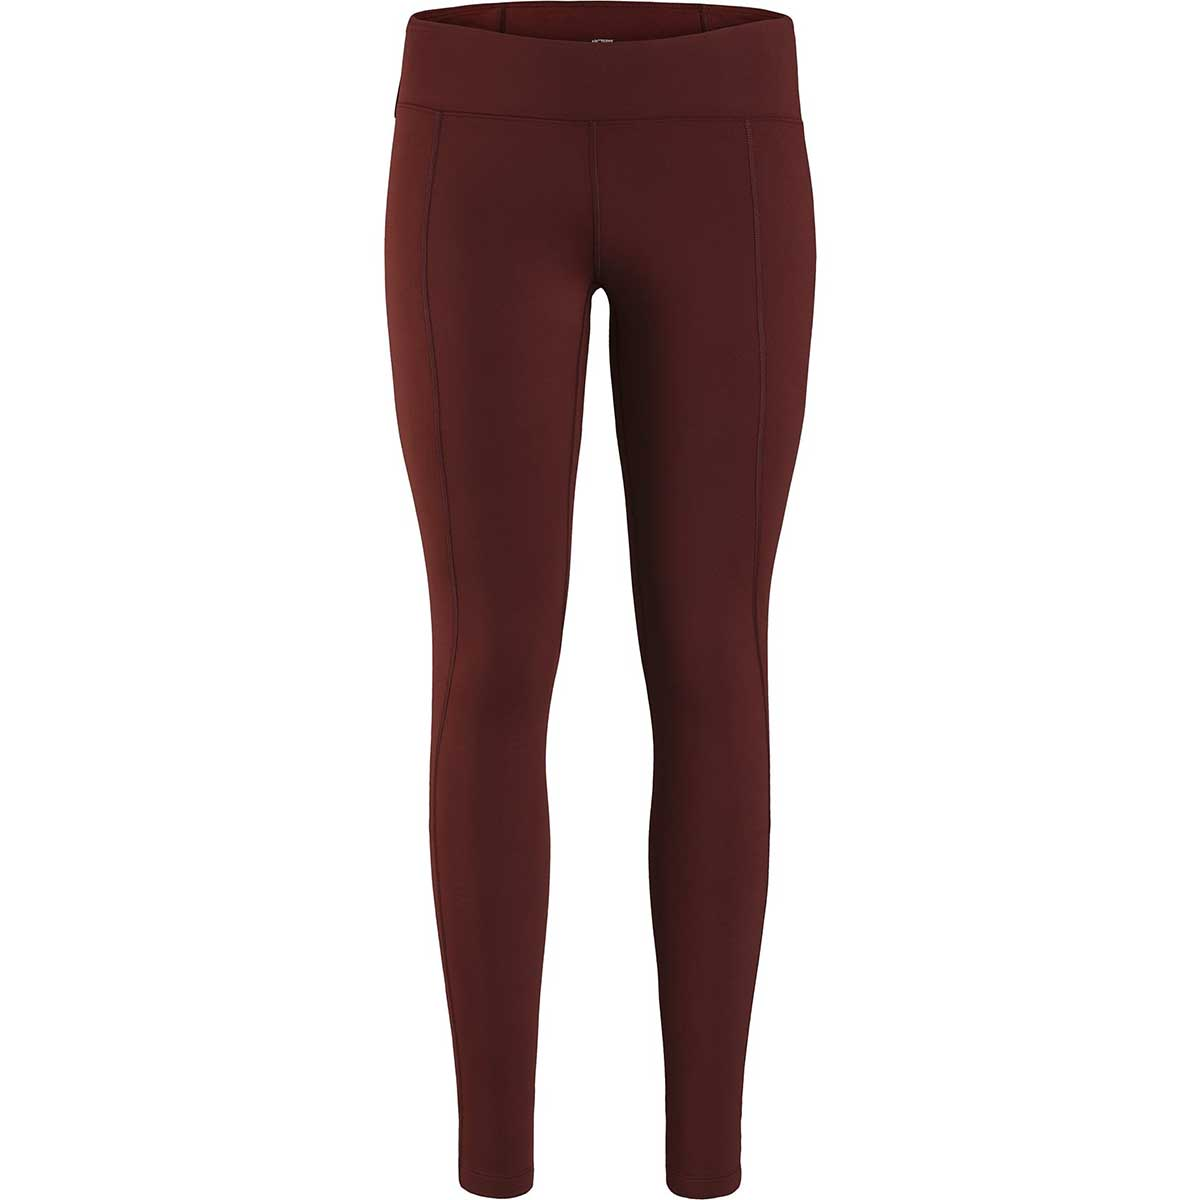 Arcteryx women's RHO LT Bottom in Flux front view